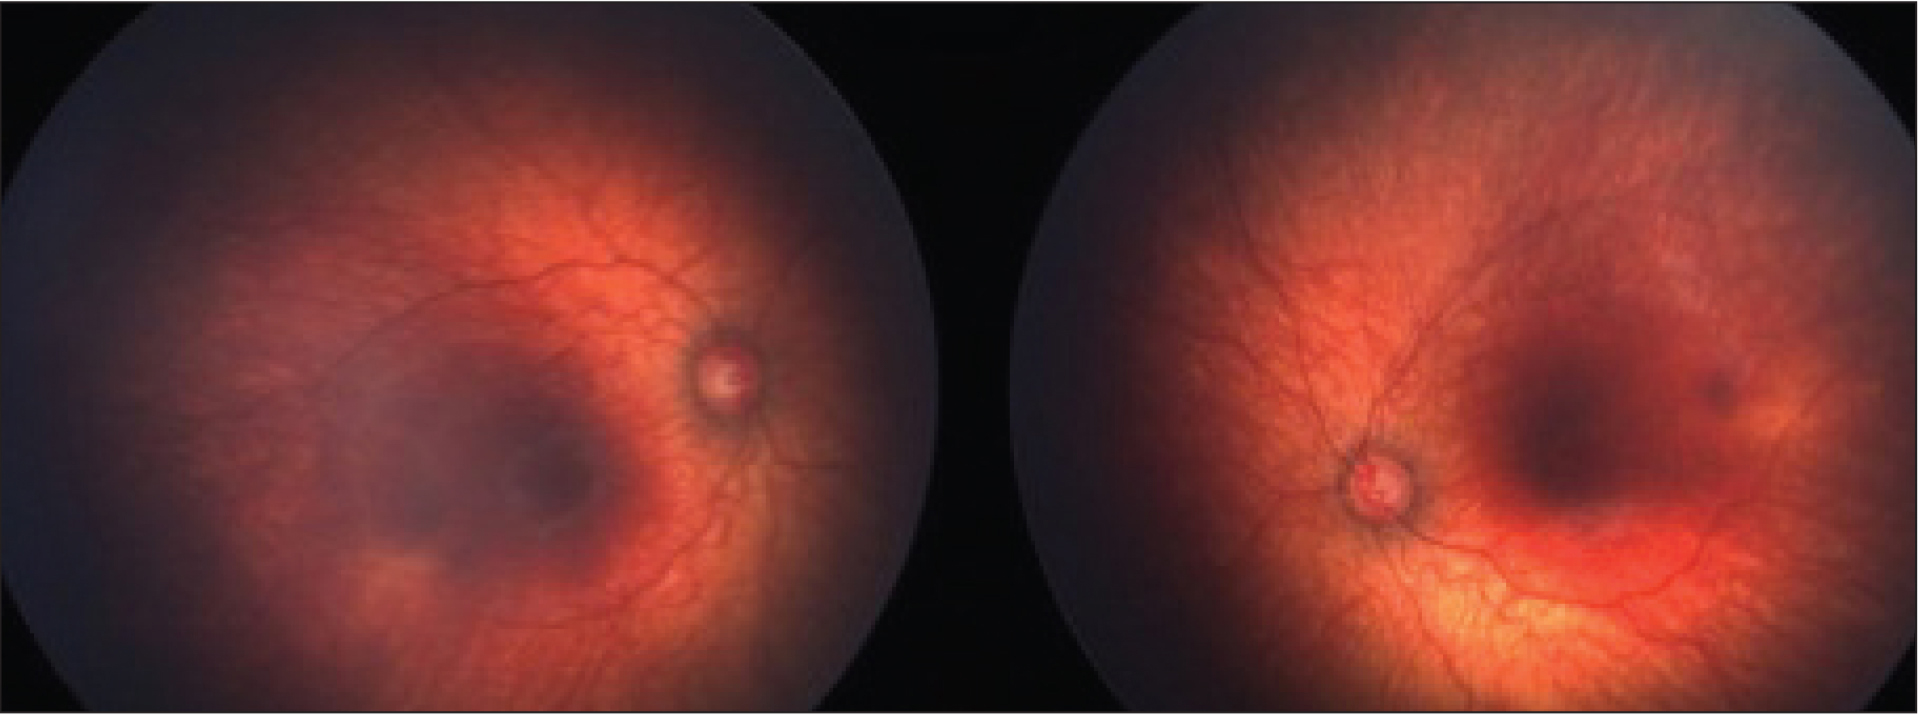 Postconceptual age of 62 weeks: regression of retinopathy of prematurity with full vascularization.